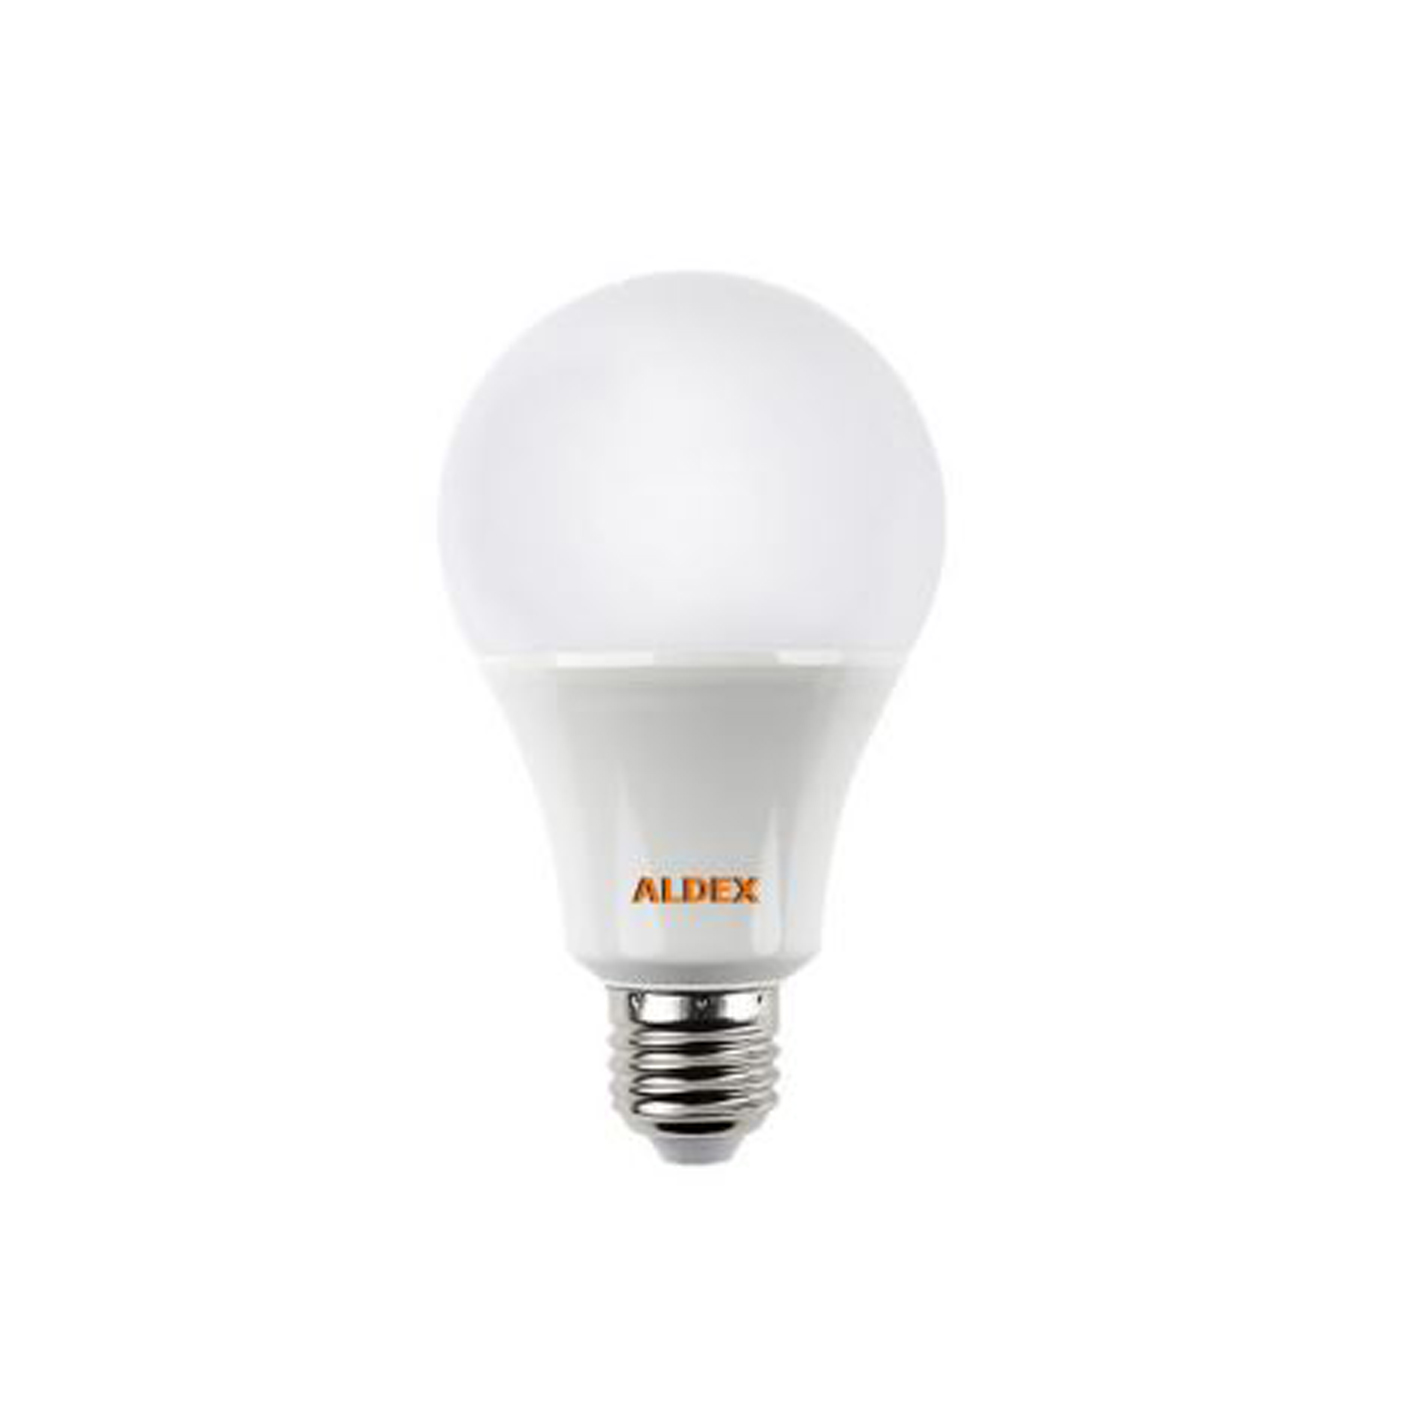 Aldex 15W 3000K E27 Led Ampul